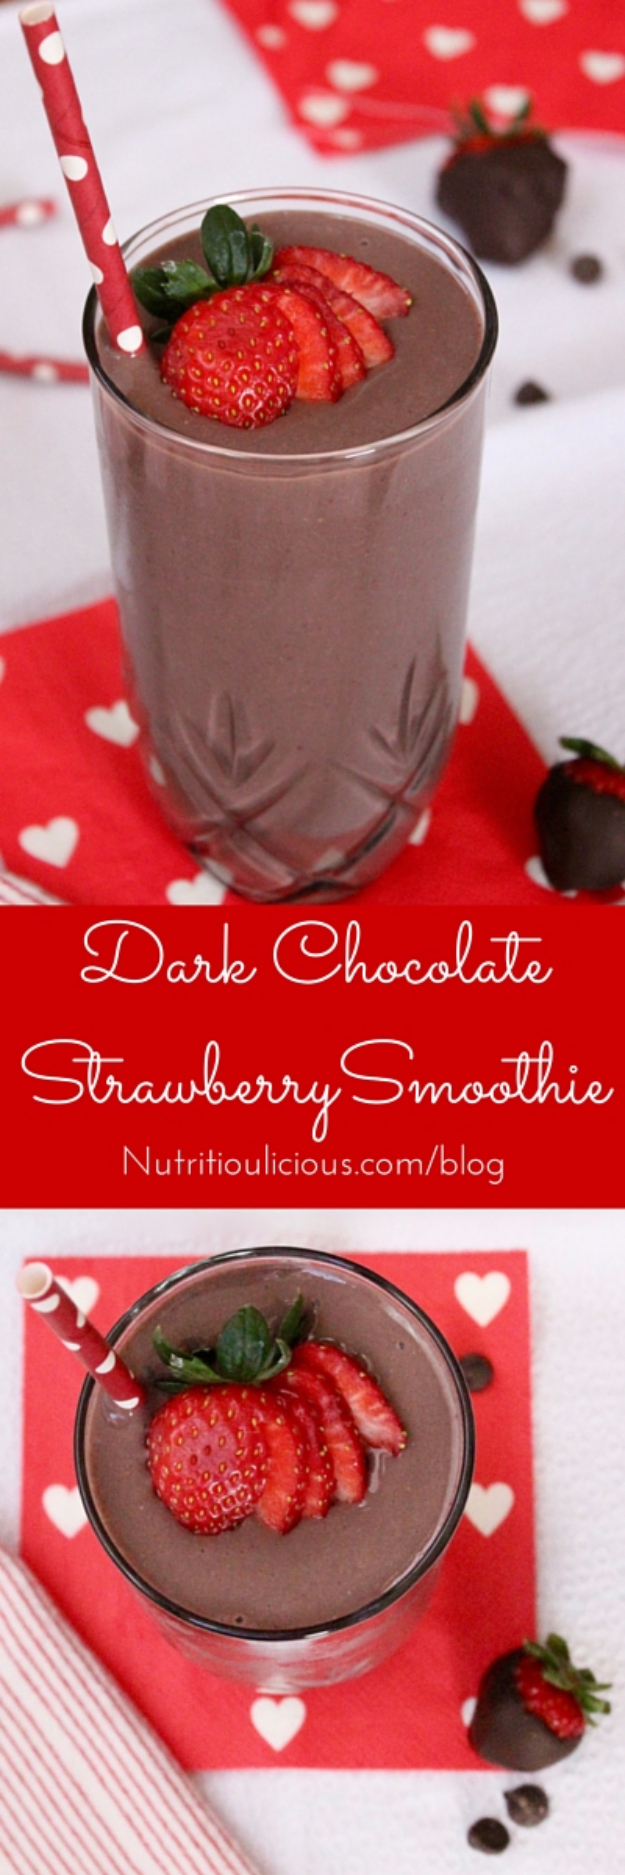 Healthy Smoothie Recipes - Dark Chocolate Strawberry Smoothie - Easy ideas perfect for breakfast, energy. Low calorie and high protein recipes for weightloss and to lose weight. Simple homemade recipe ideas that kids love. Quick EASY morning recipes before work and school, after workout http://diyjoy.com/healthy-smoothie-recipes